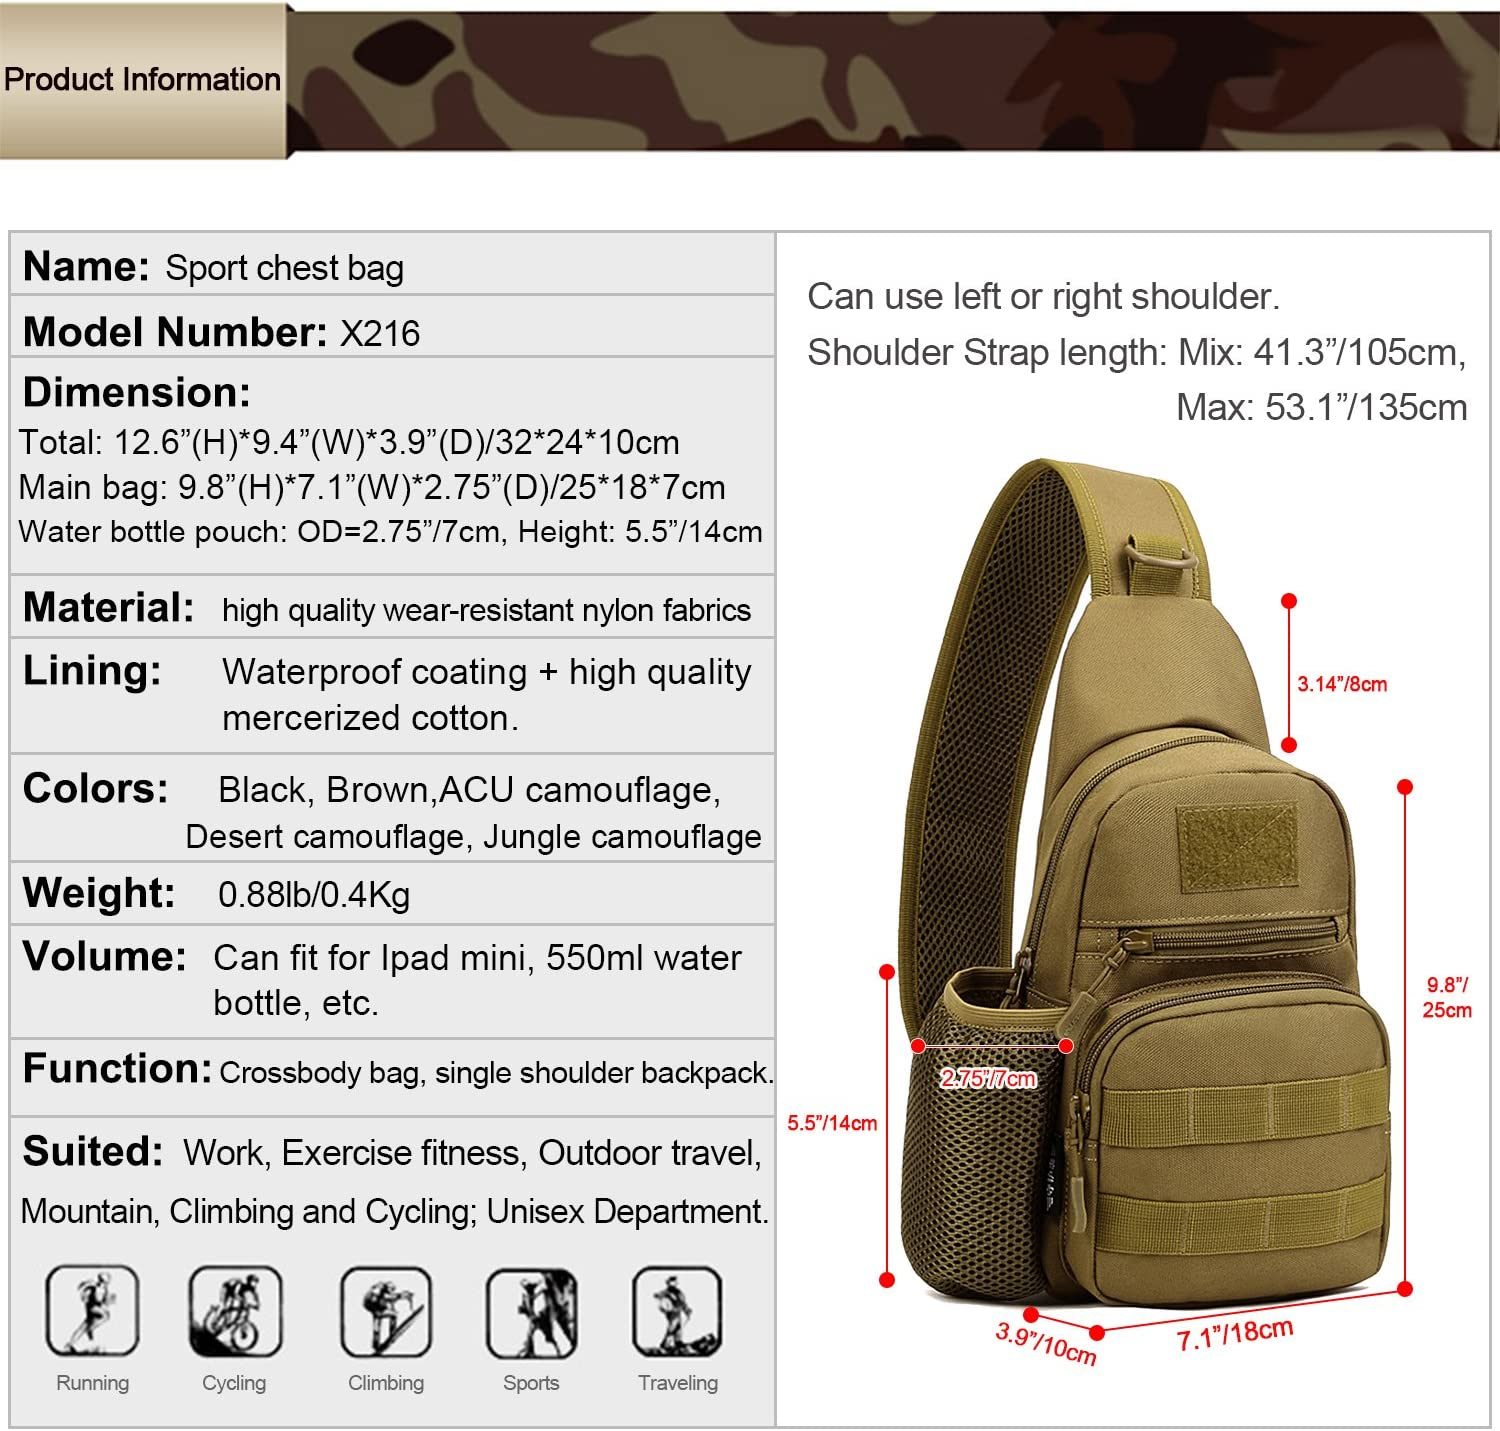 USB Outlet Include Huntvp Tactical Chest Bag with Water Bottle Pouch Molle Chest Sling Pack Backpack Crossbody Bag for Outdoors Daily Use